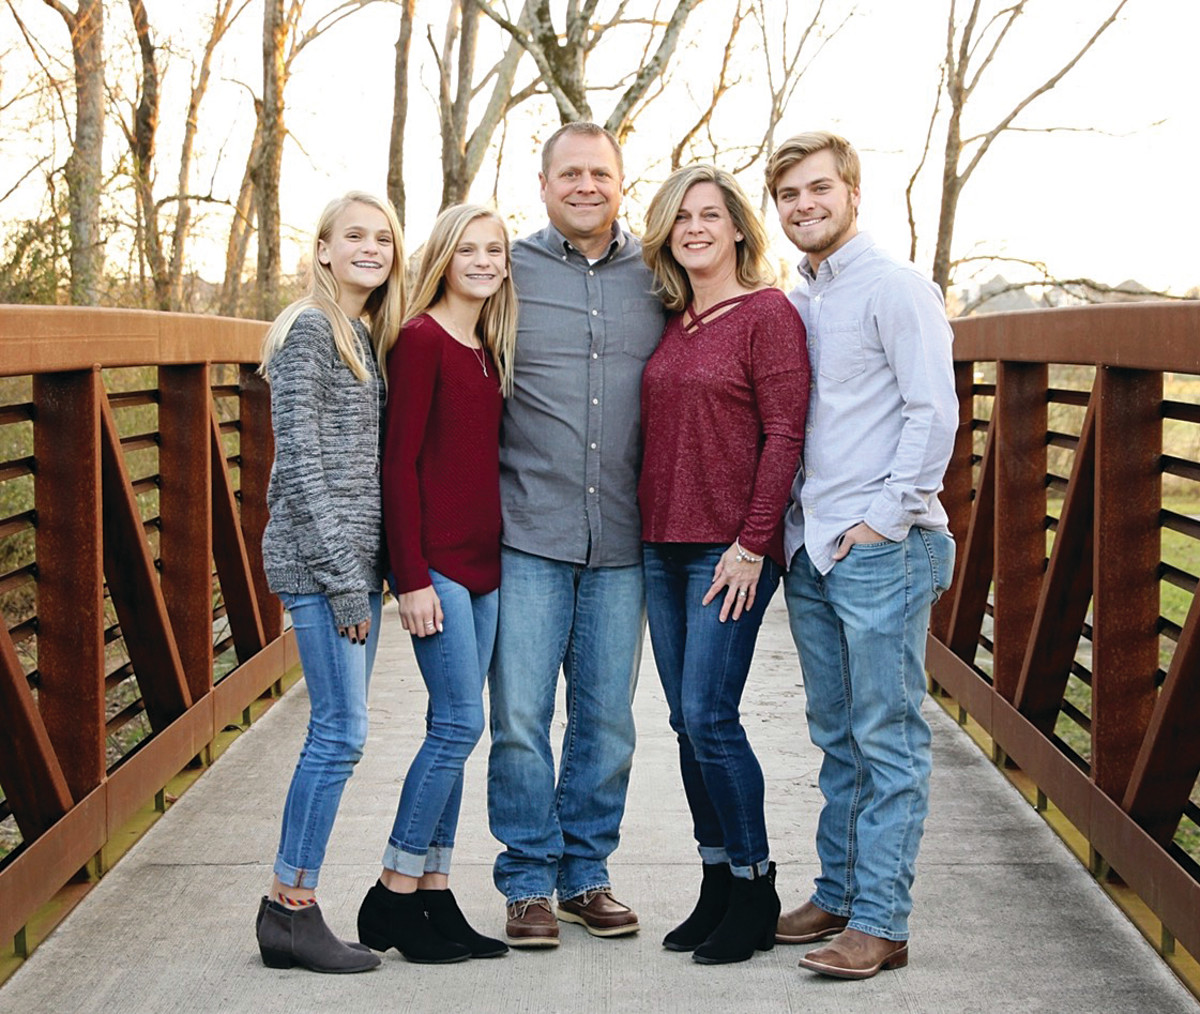 The Johnson family (from left): Camryn, Kendall, Eric, Douglass and Tyler.